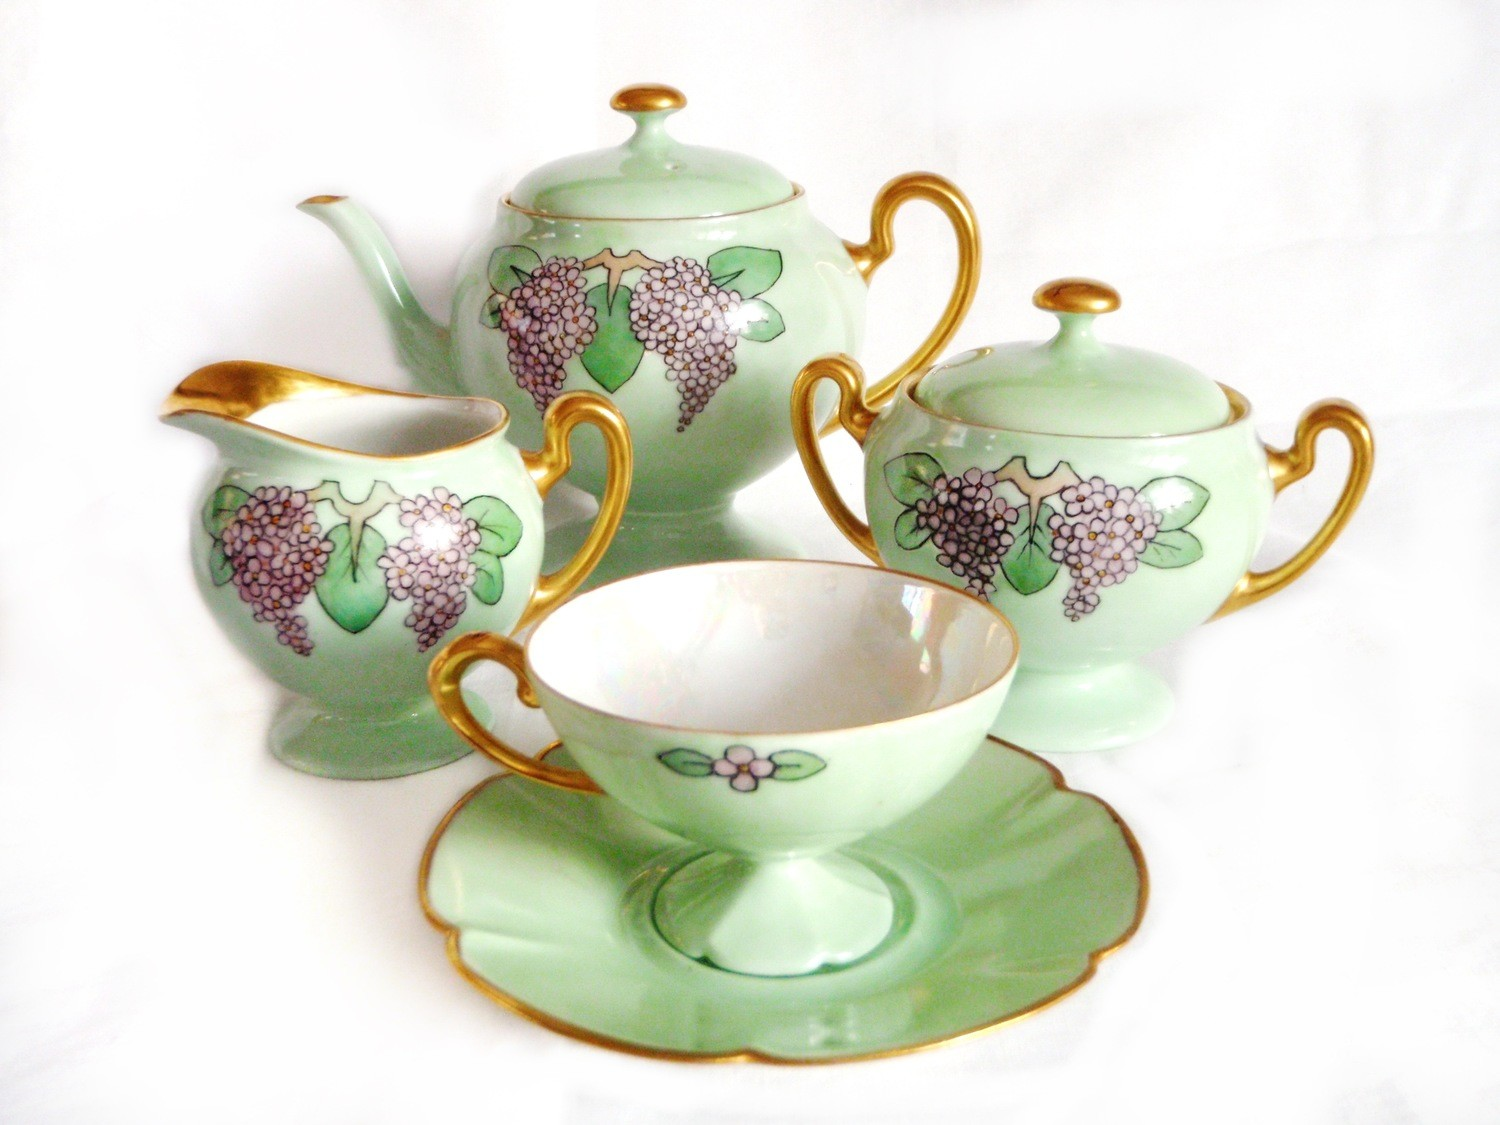 13 pc Art Deco Limoges Porcelain Tea Coffee Set  Hand Painted Sg'd Estelle 1936